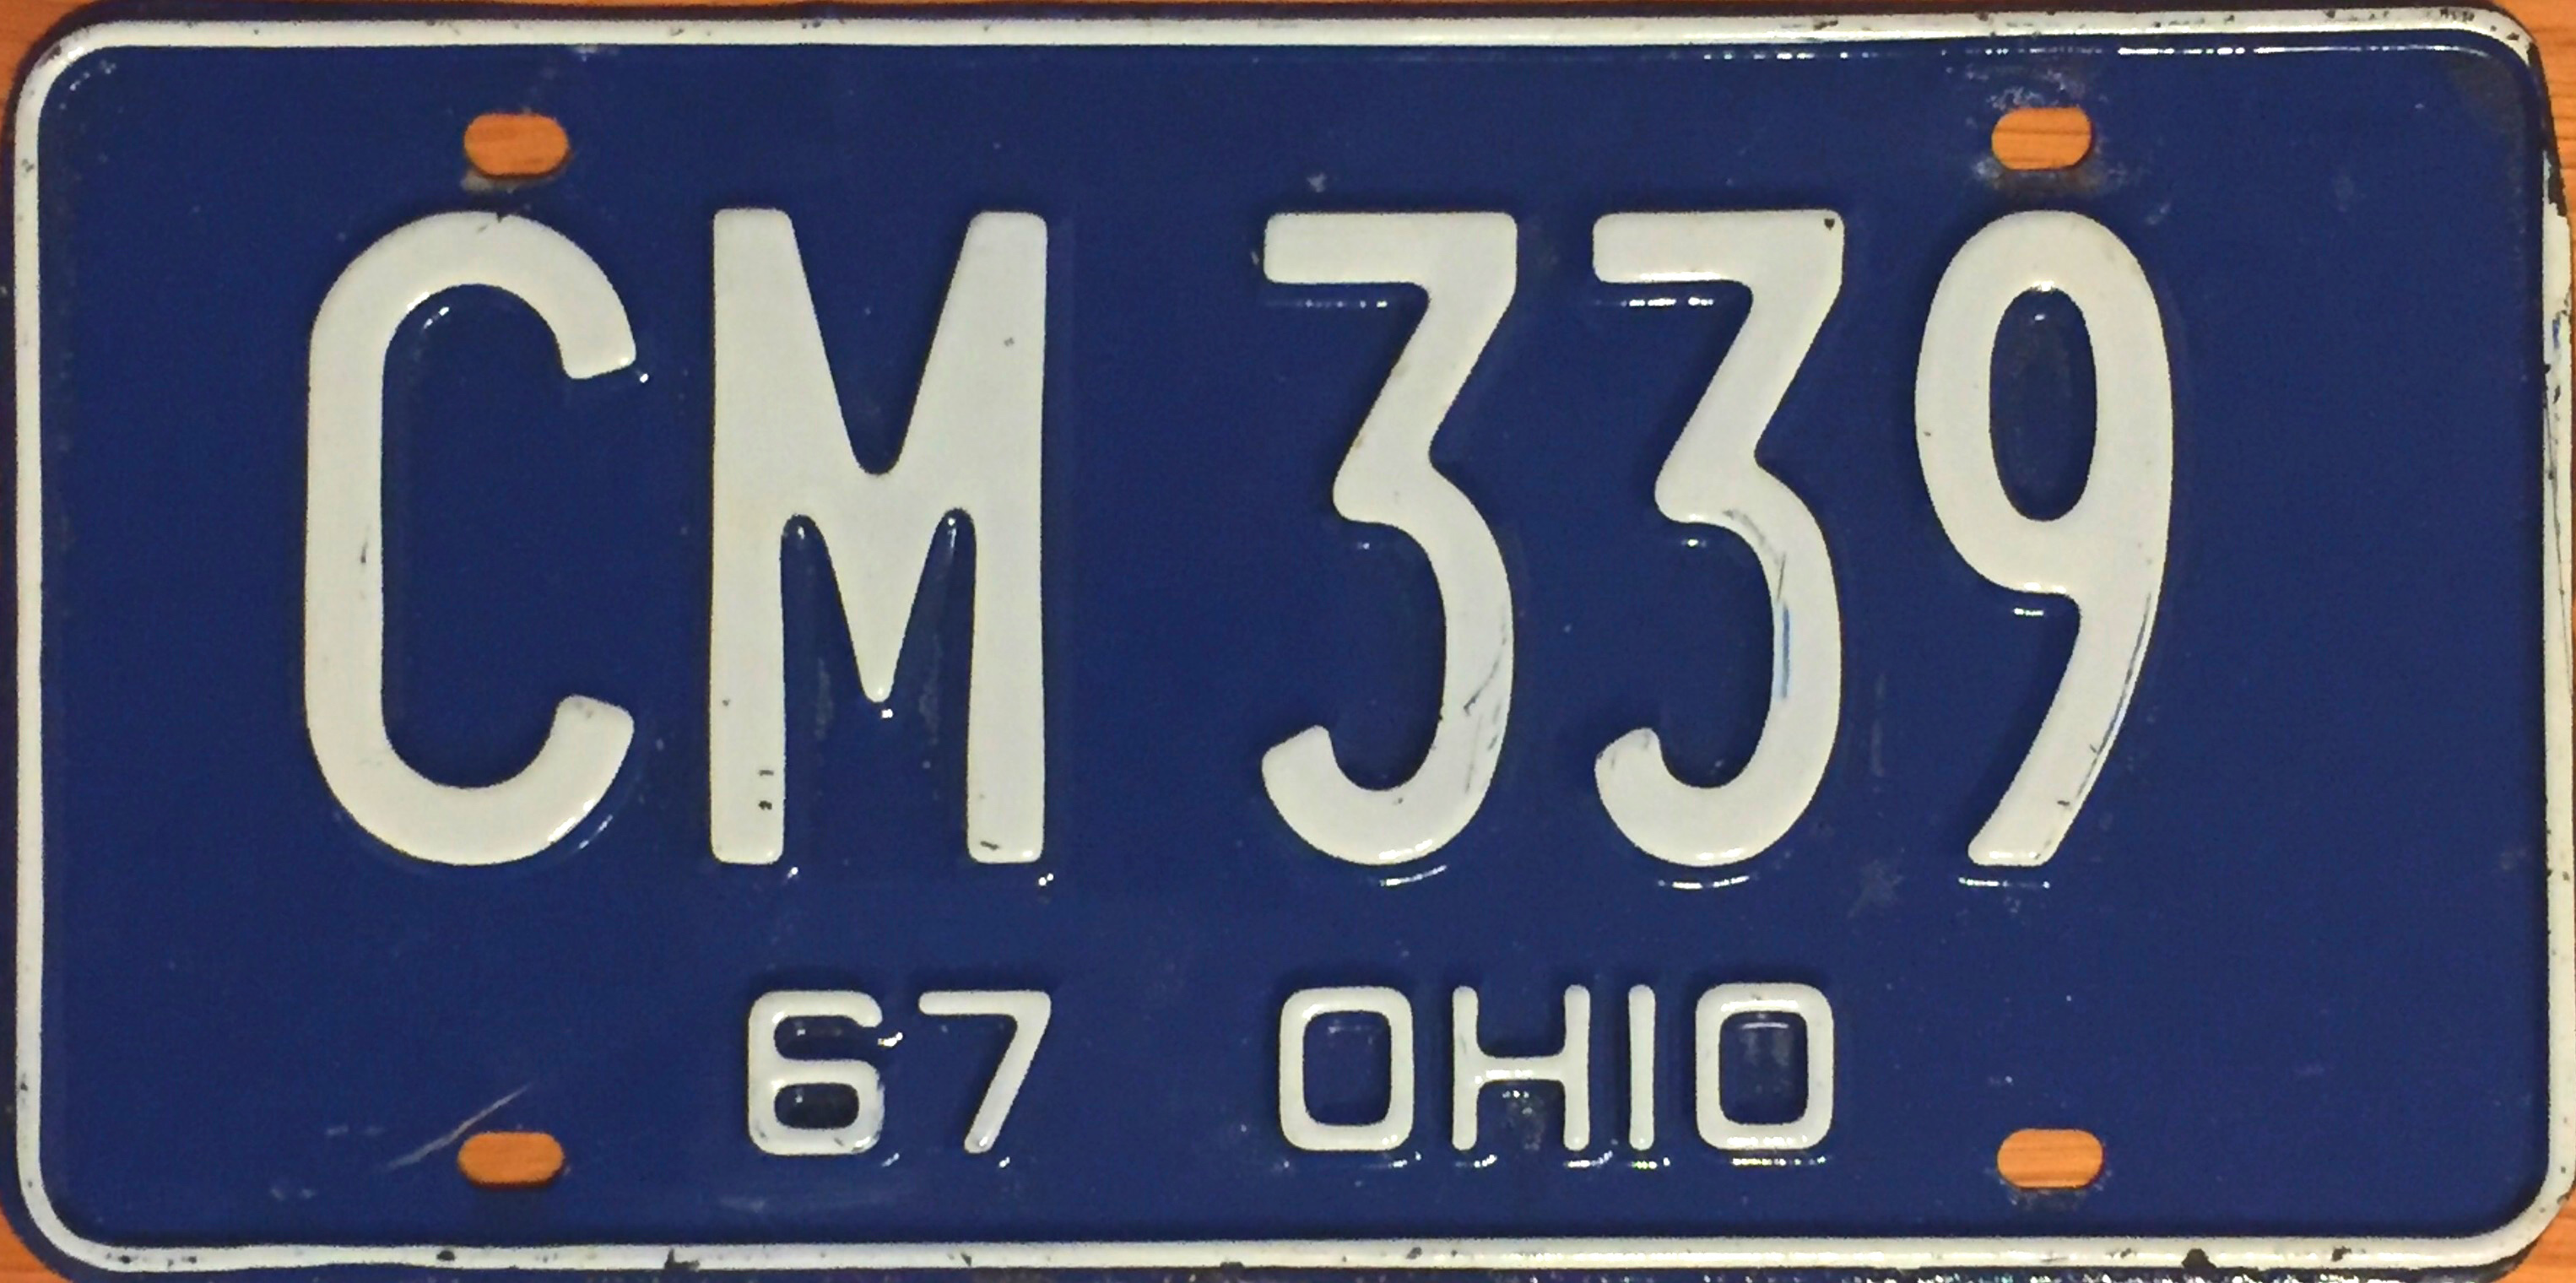 File:1967 Ohio license plate.JPG - Wikimedia Commons